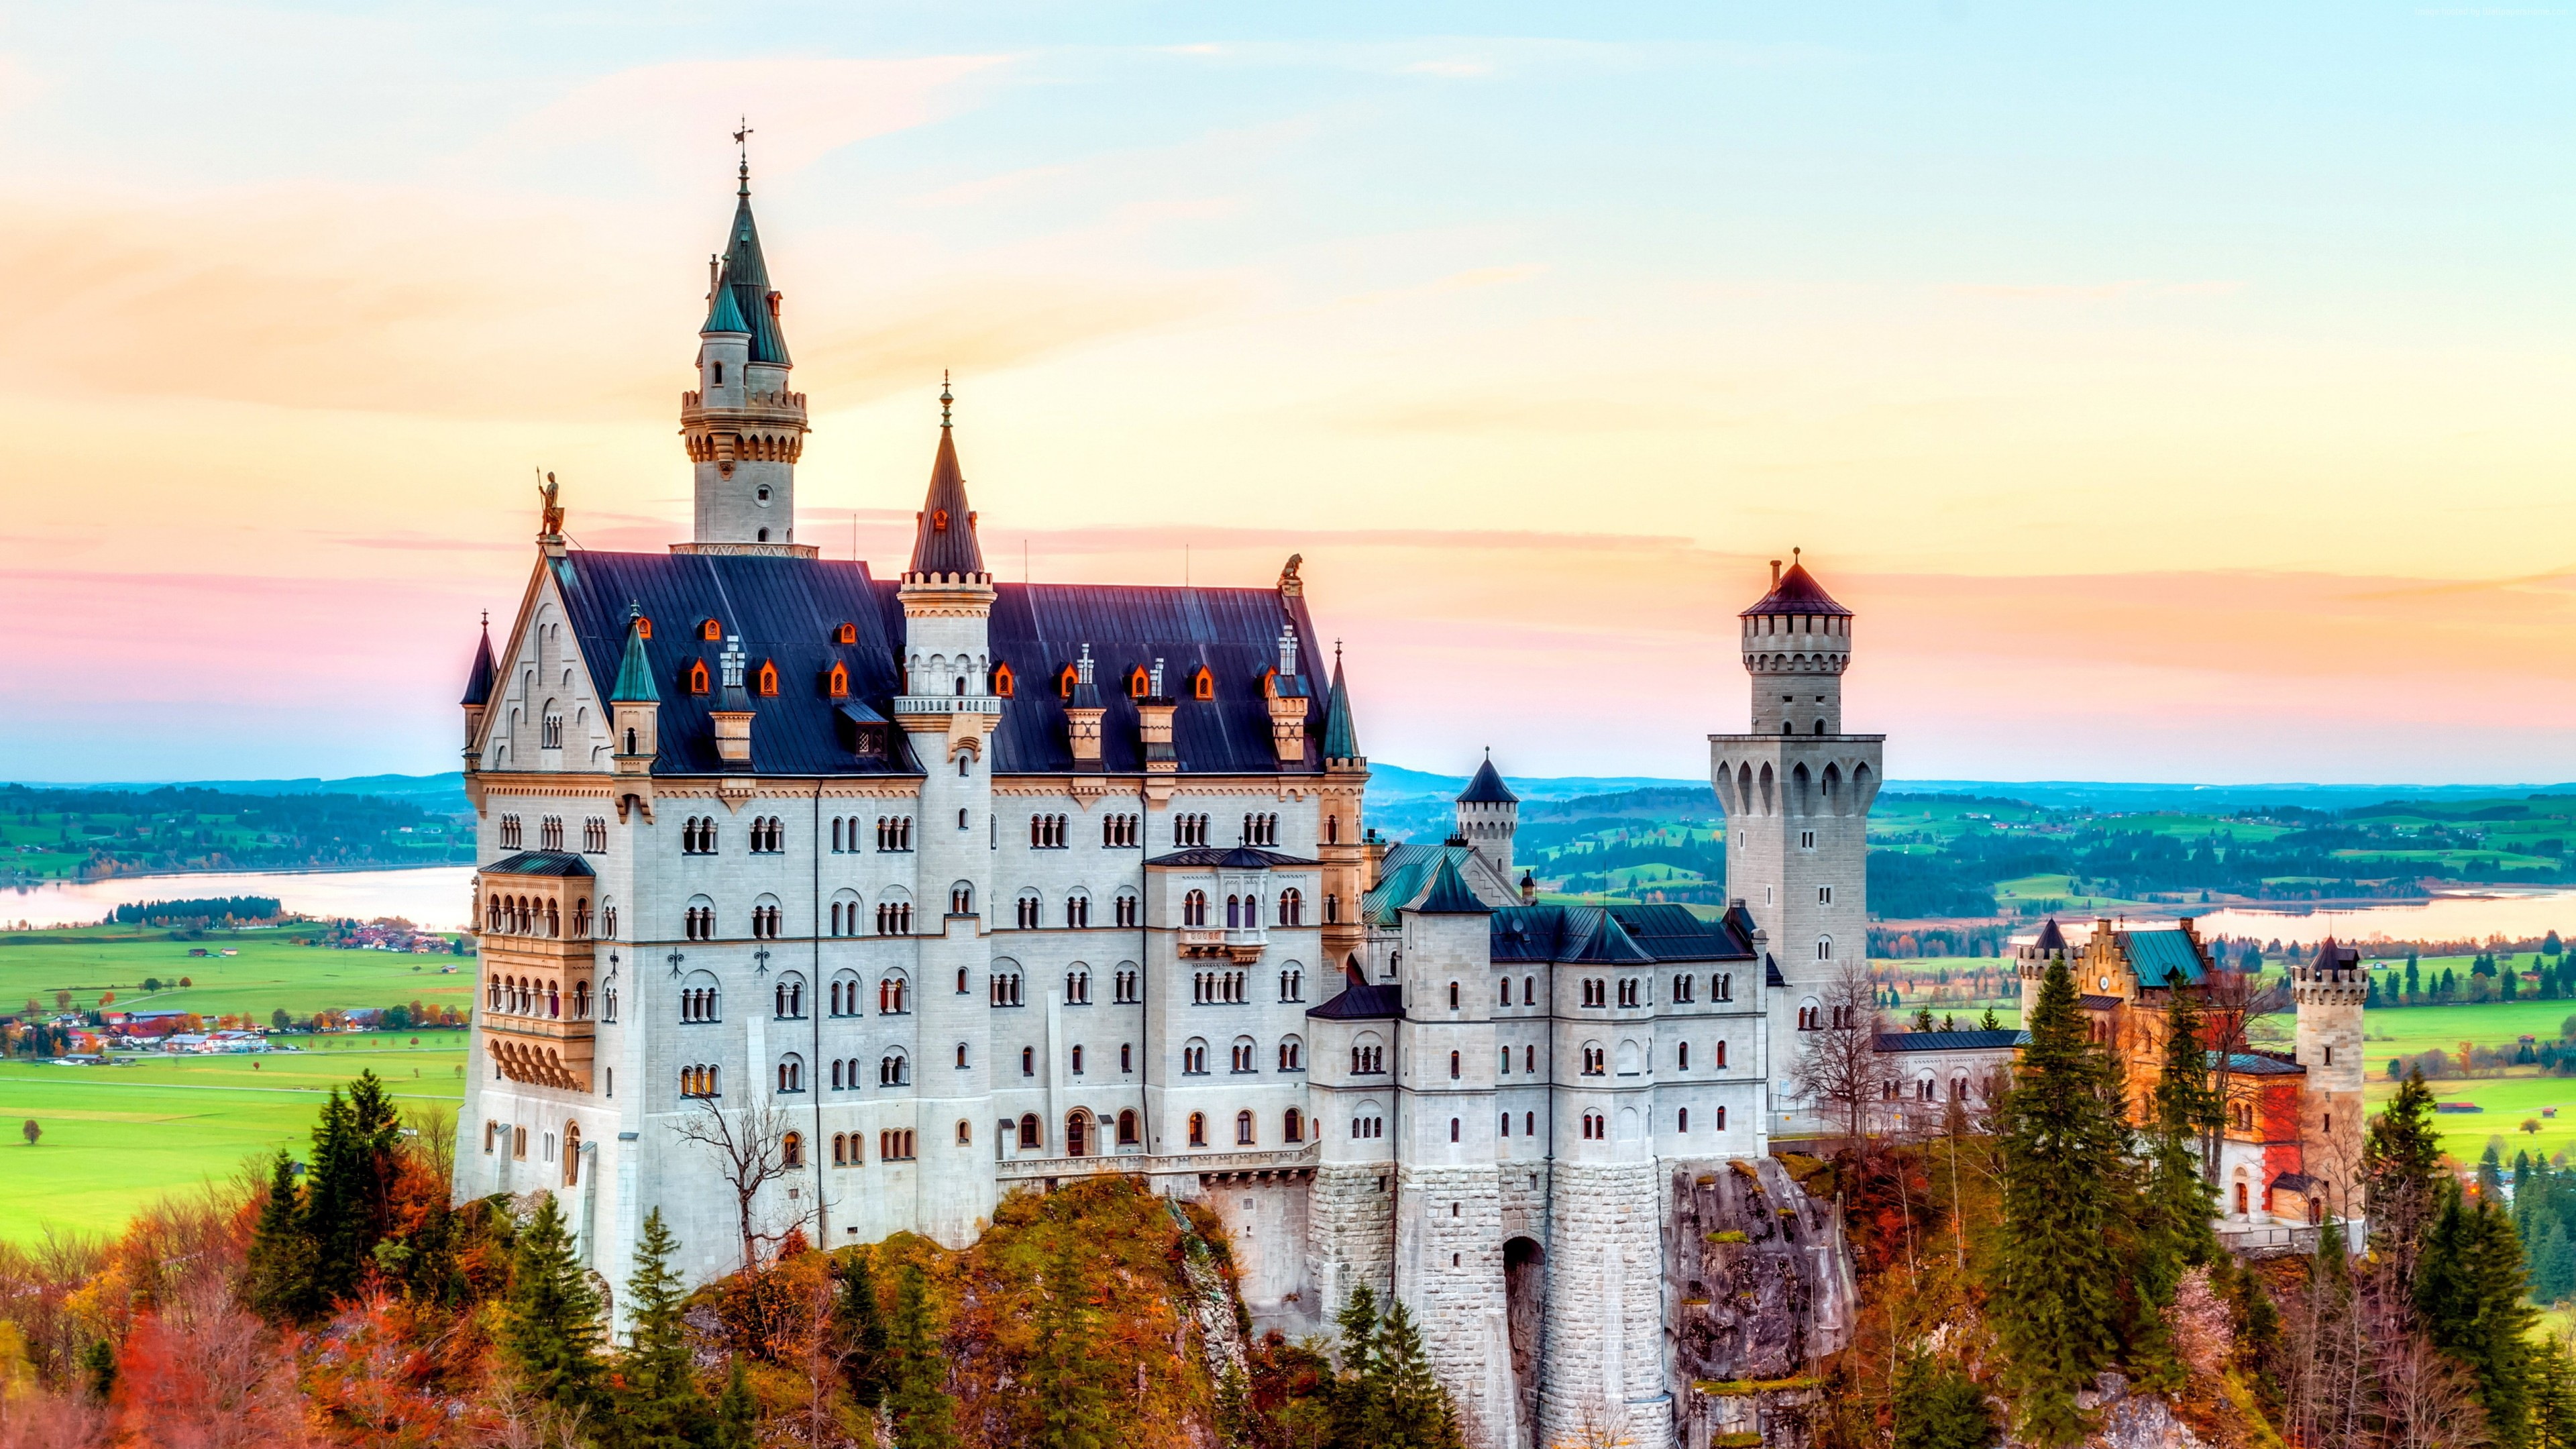 Wallpaper Castle, Neuschwanstein, alps, Autumn, bavaria, Germany, Mountain, sky, travel, Architecture